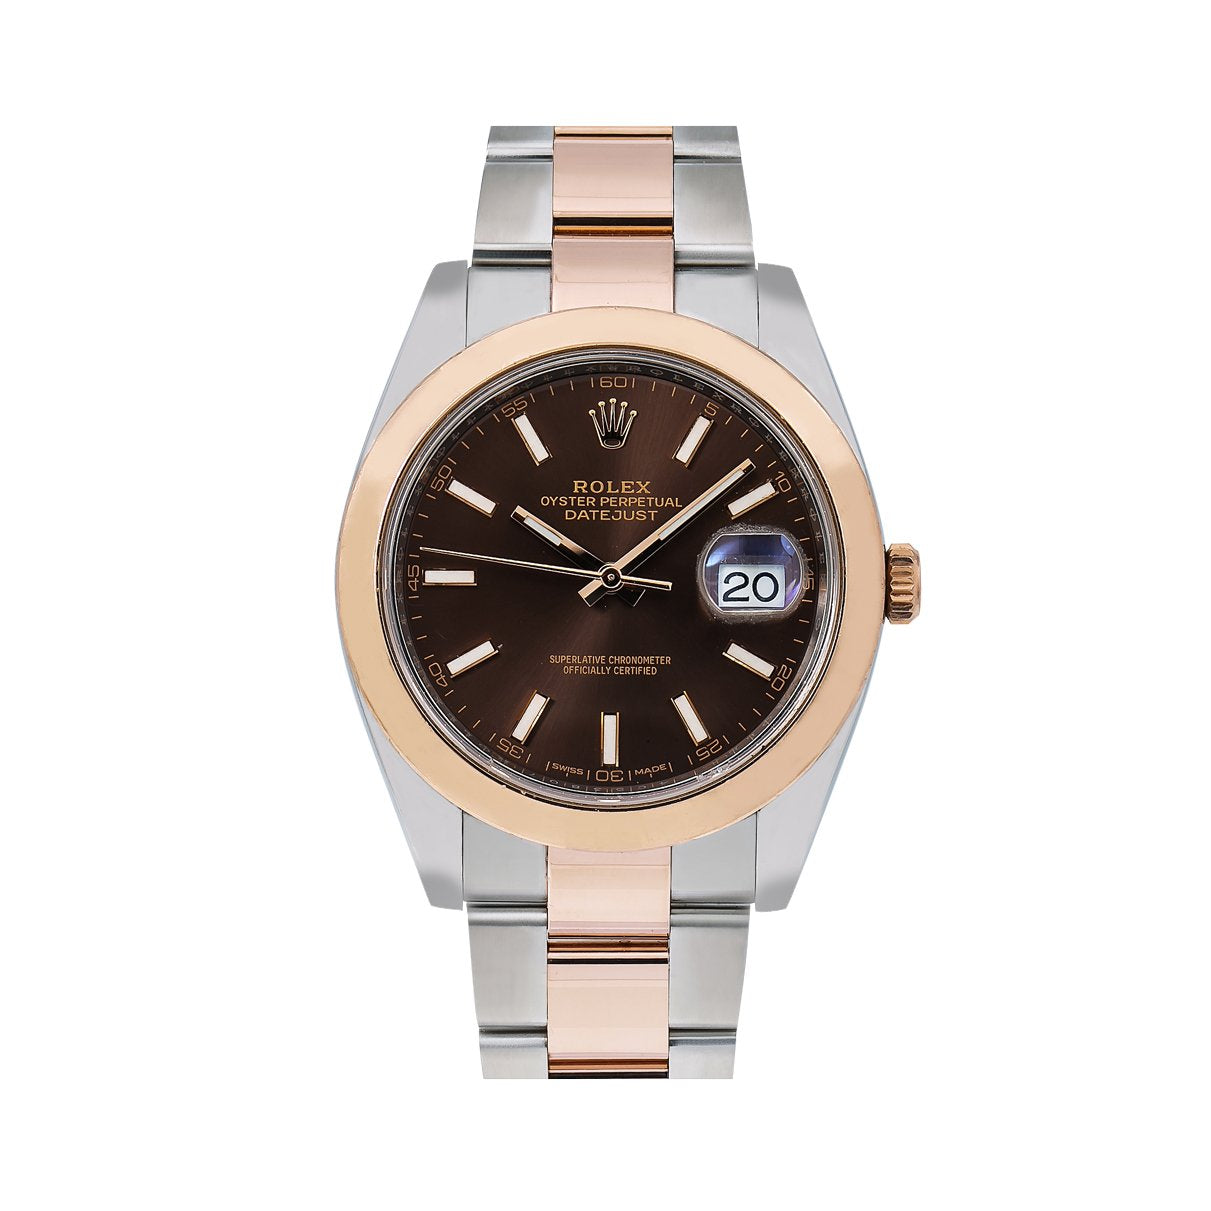 Rolex Datejust 126301 41MM Brown Dial With Two Tone Bracelet